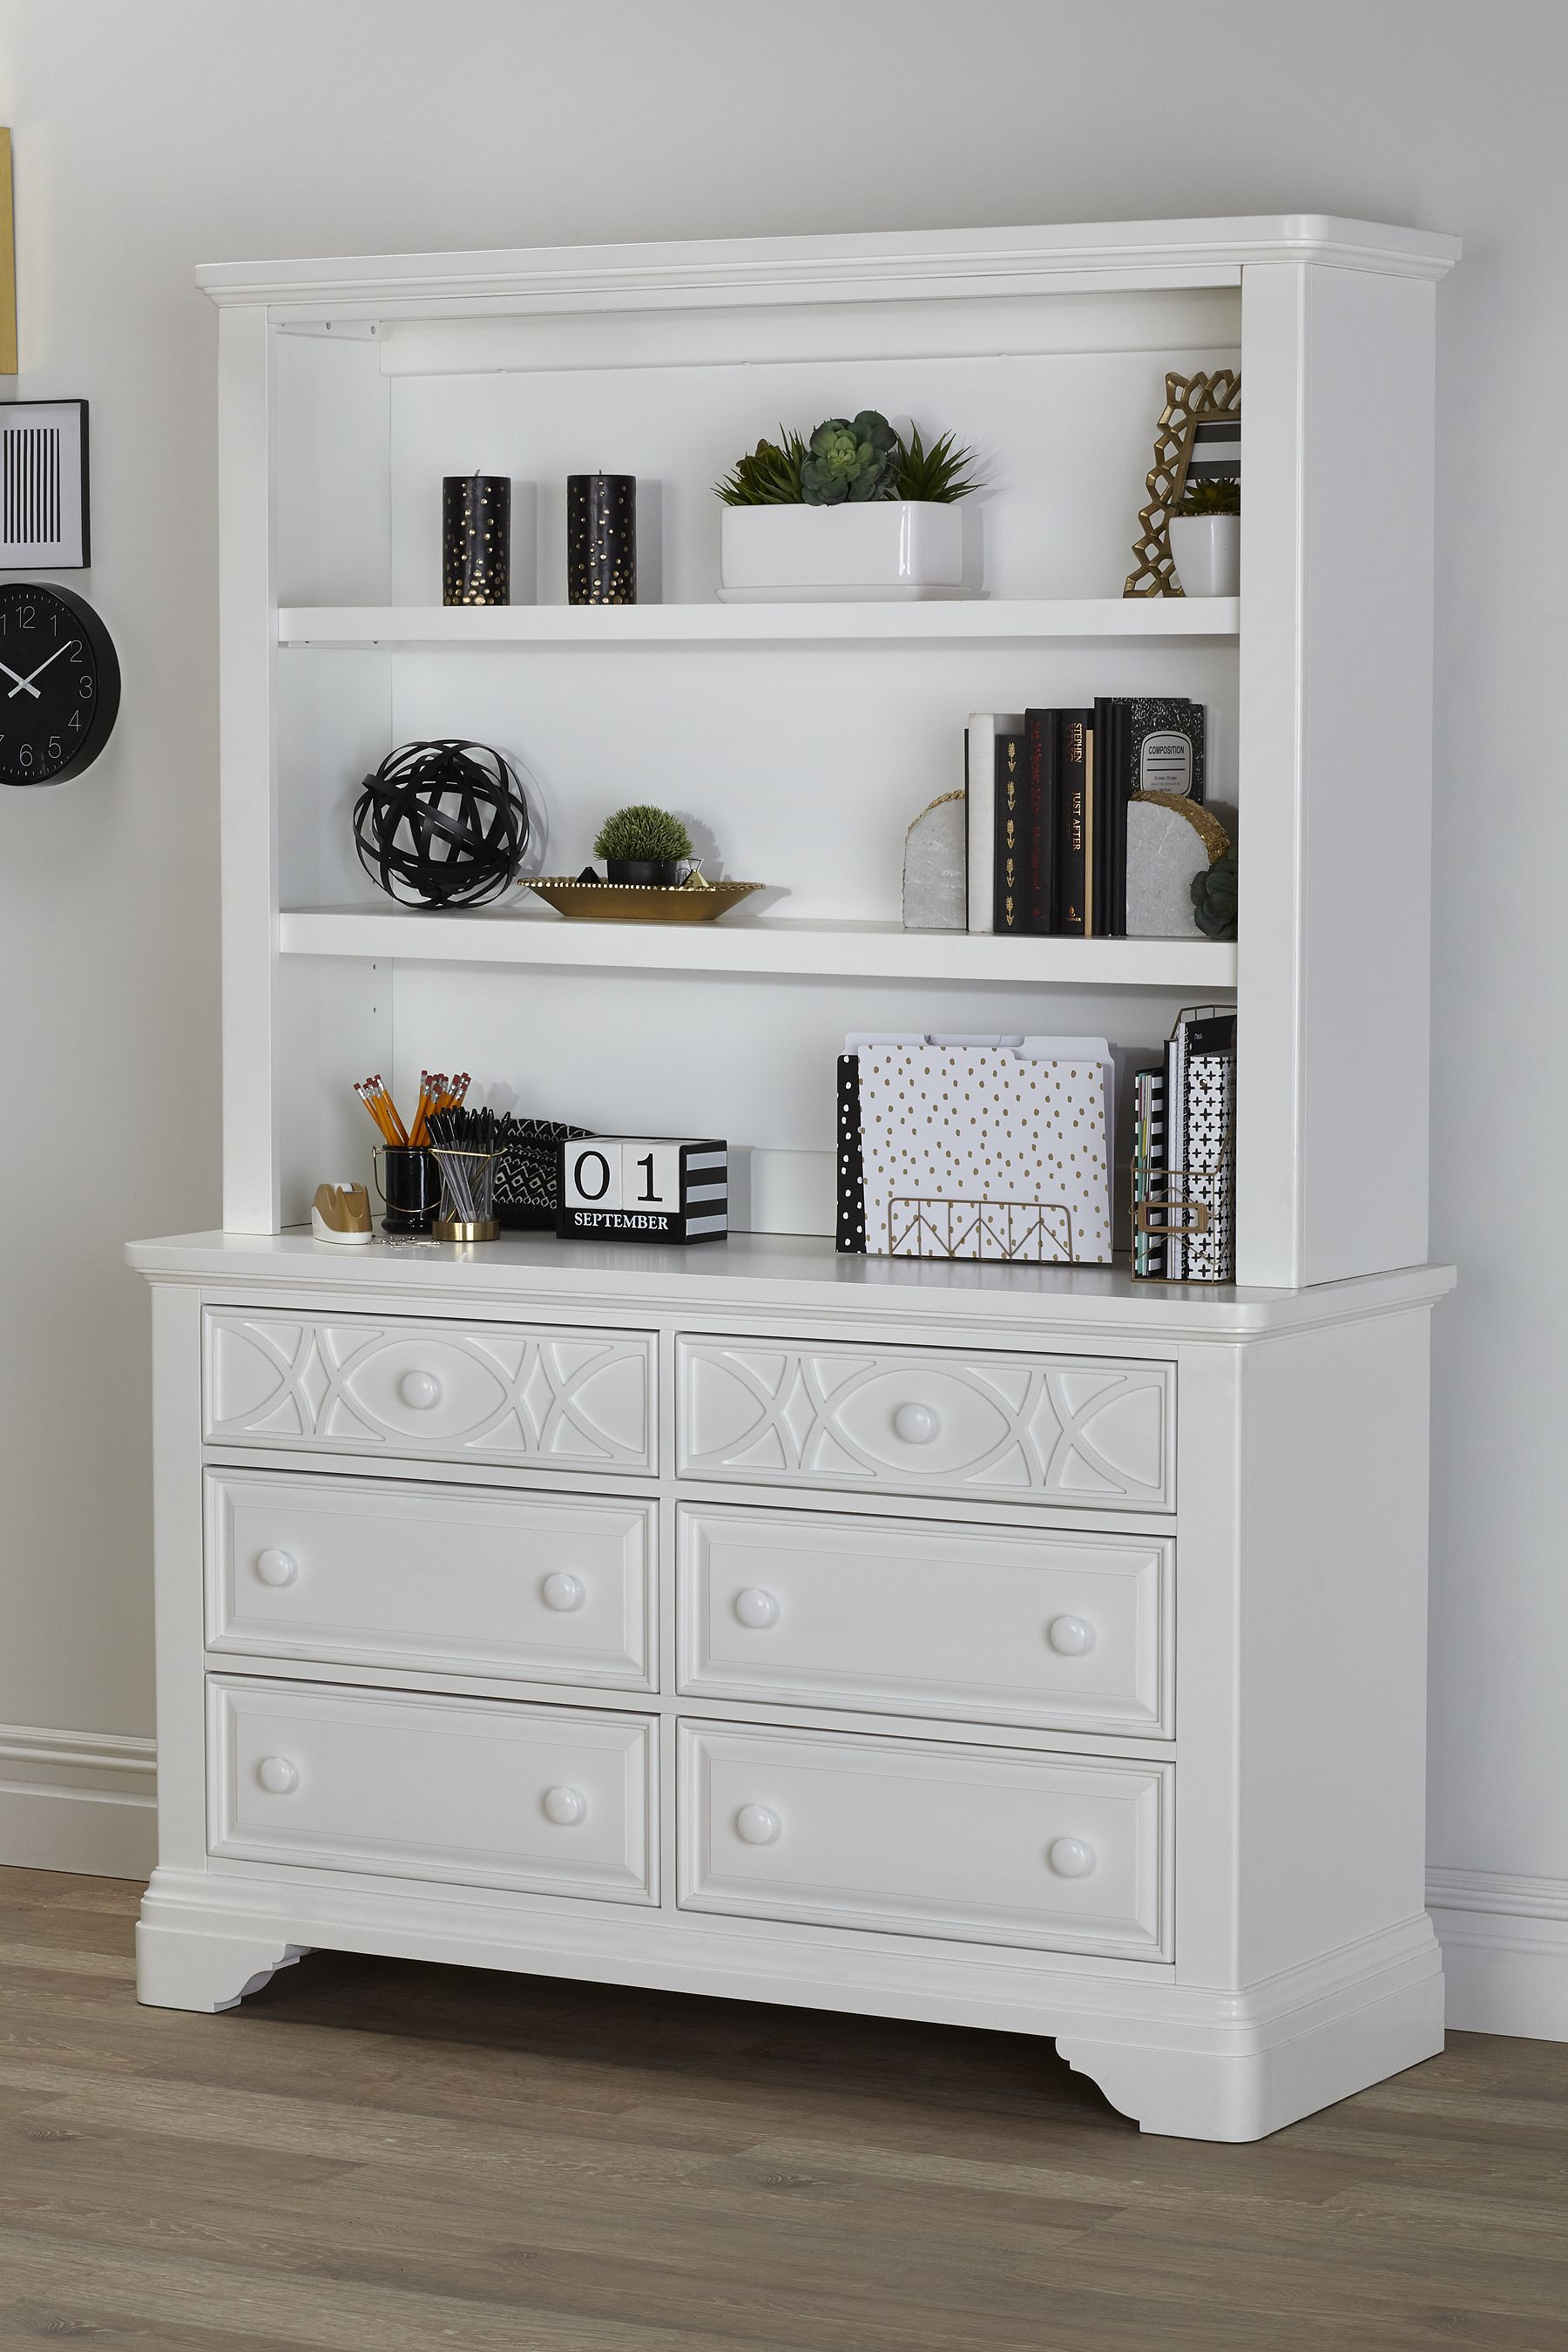 details and make room living s white child standout your this hutch the eng chic by most drawer with dorel chest vivienne way collections products dresser elegant teens bedroom features glamorous in bright